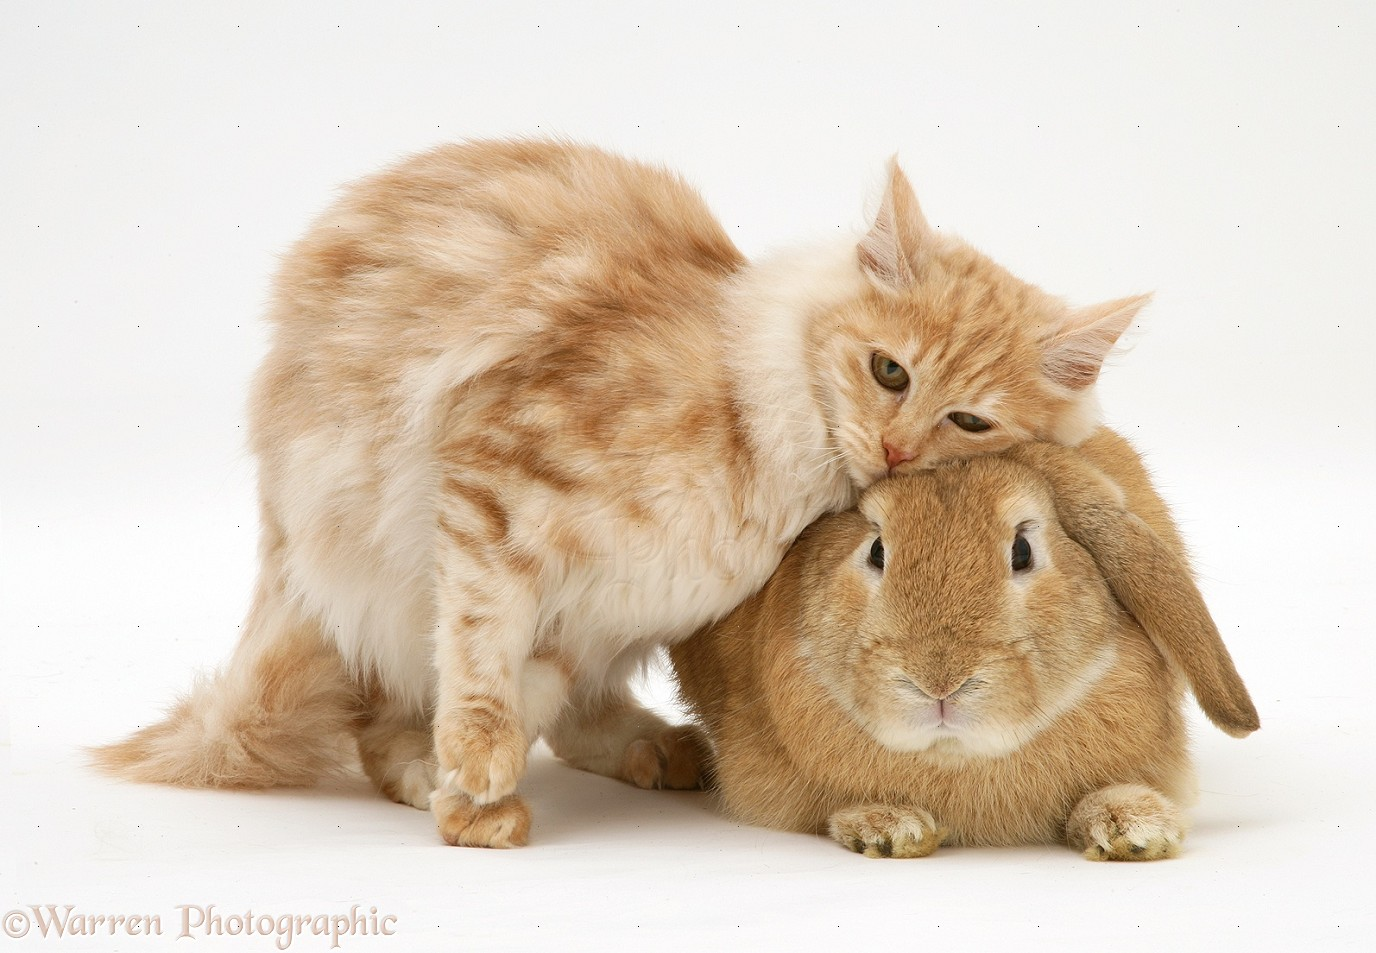 Cute Cat Wallpapers High Resolution Pets Ginger Rabbit And Cat Photo Wp18021